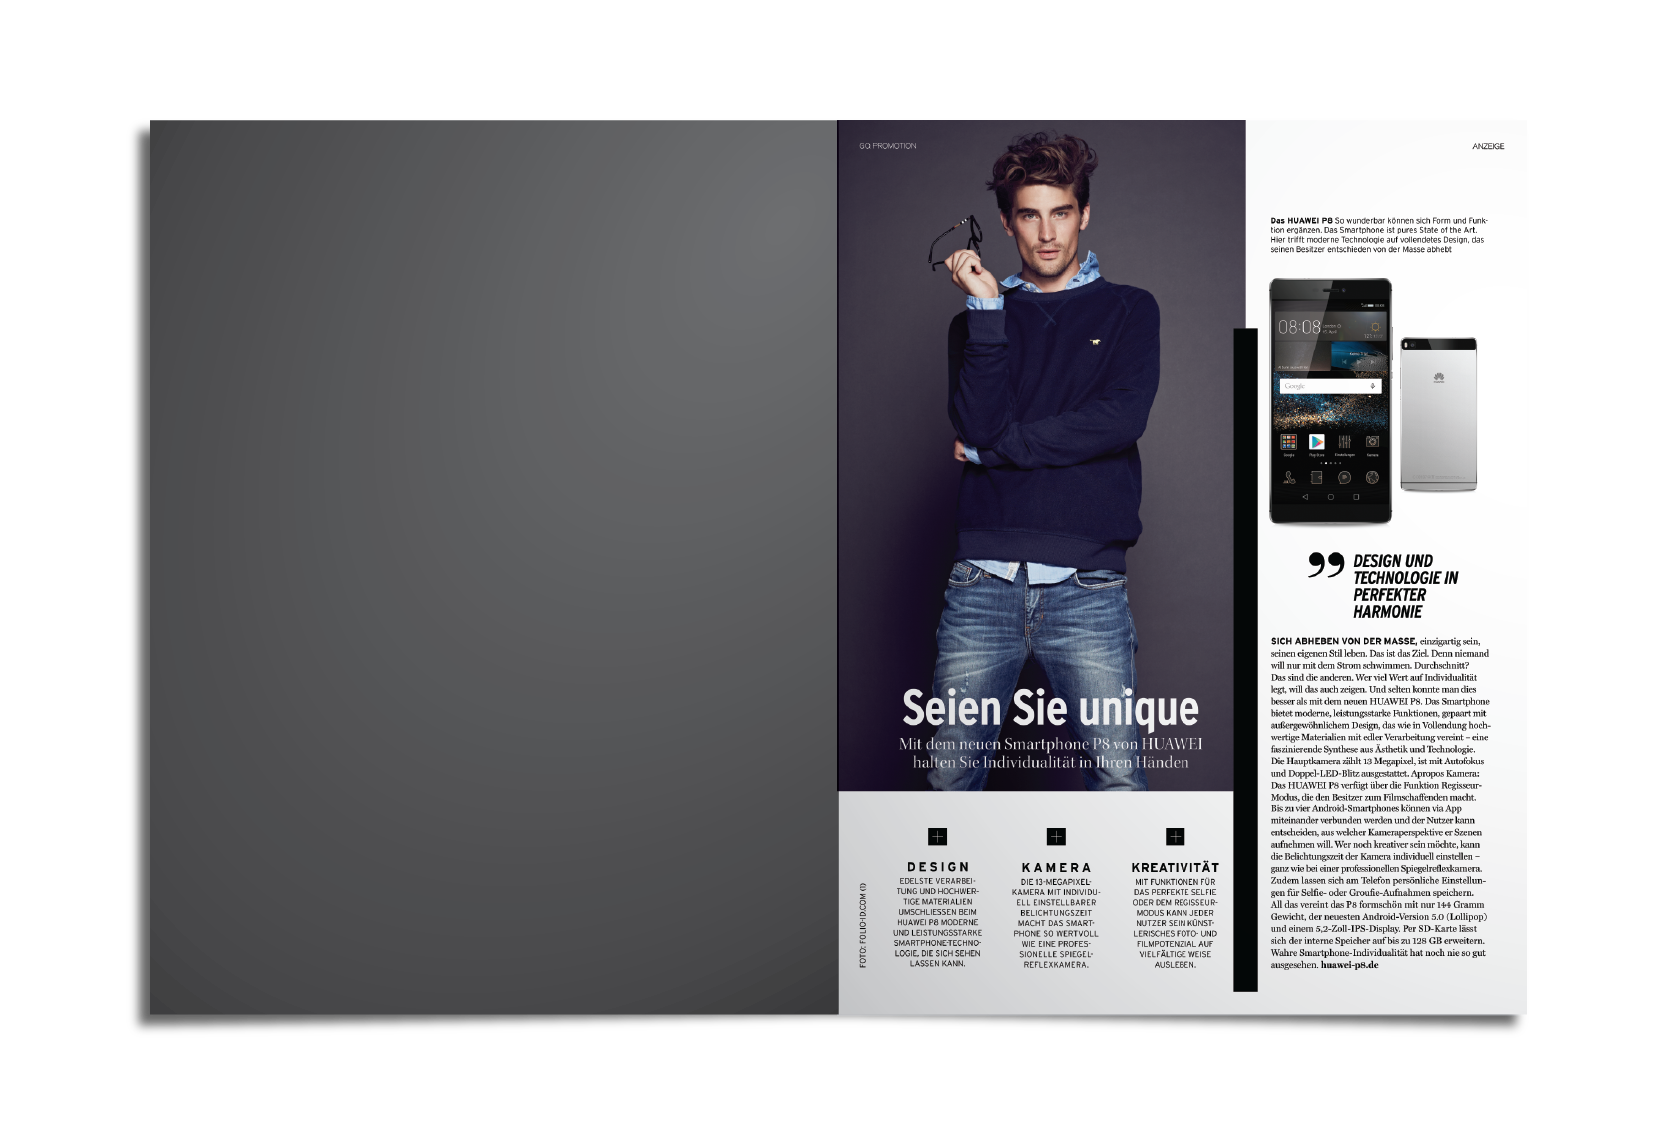 Huawei_GQ_WIRED_2015-01.png